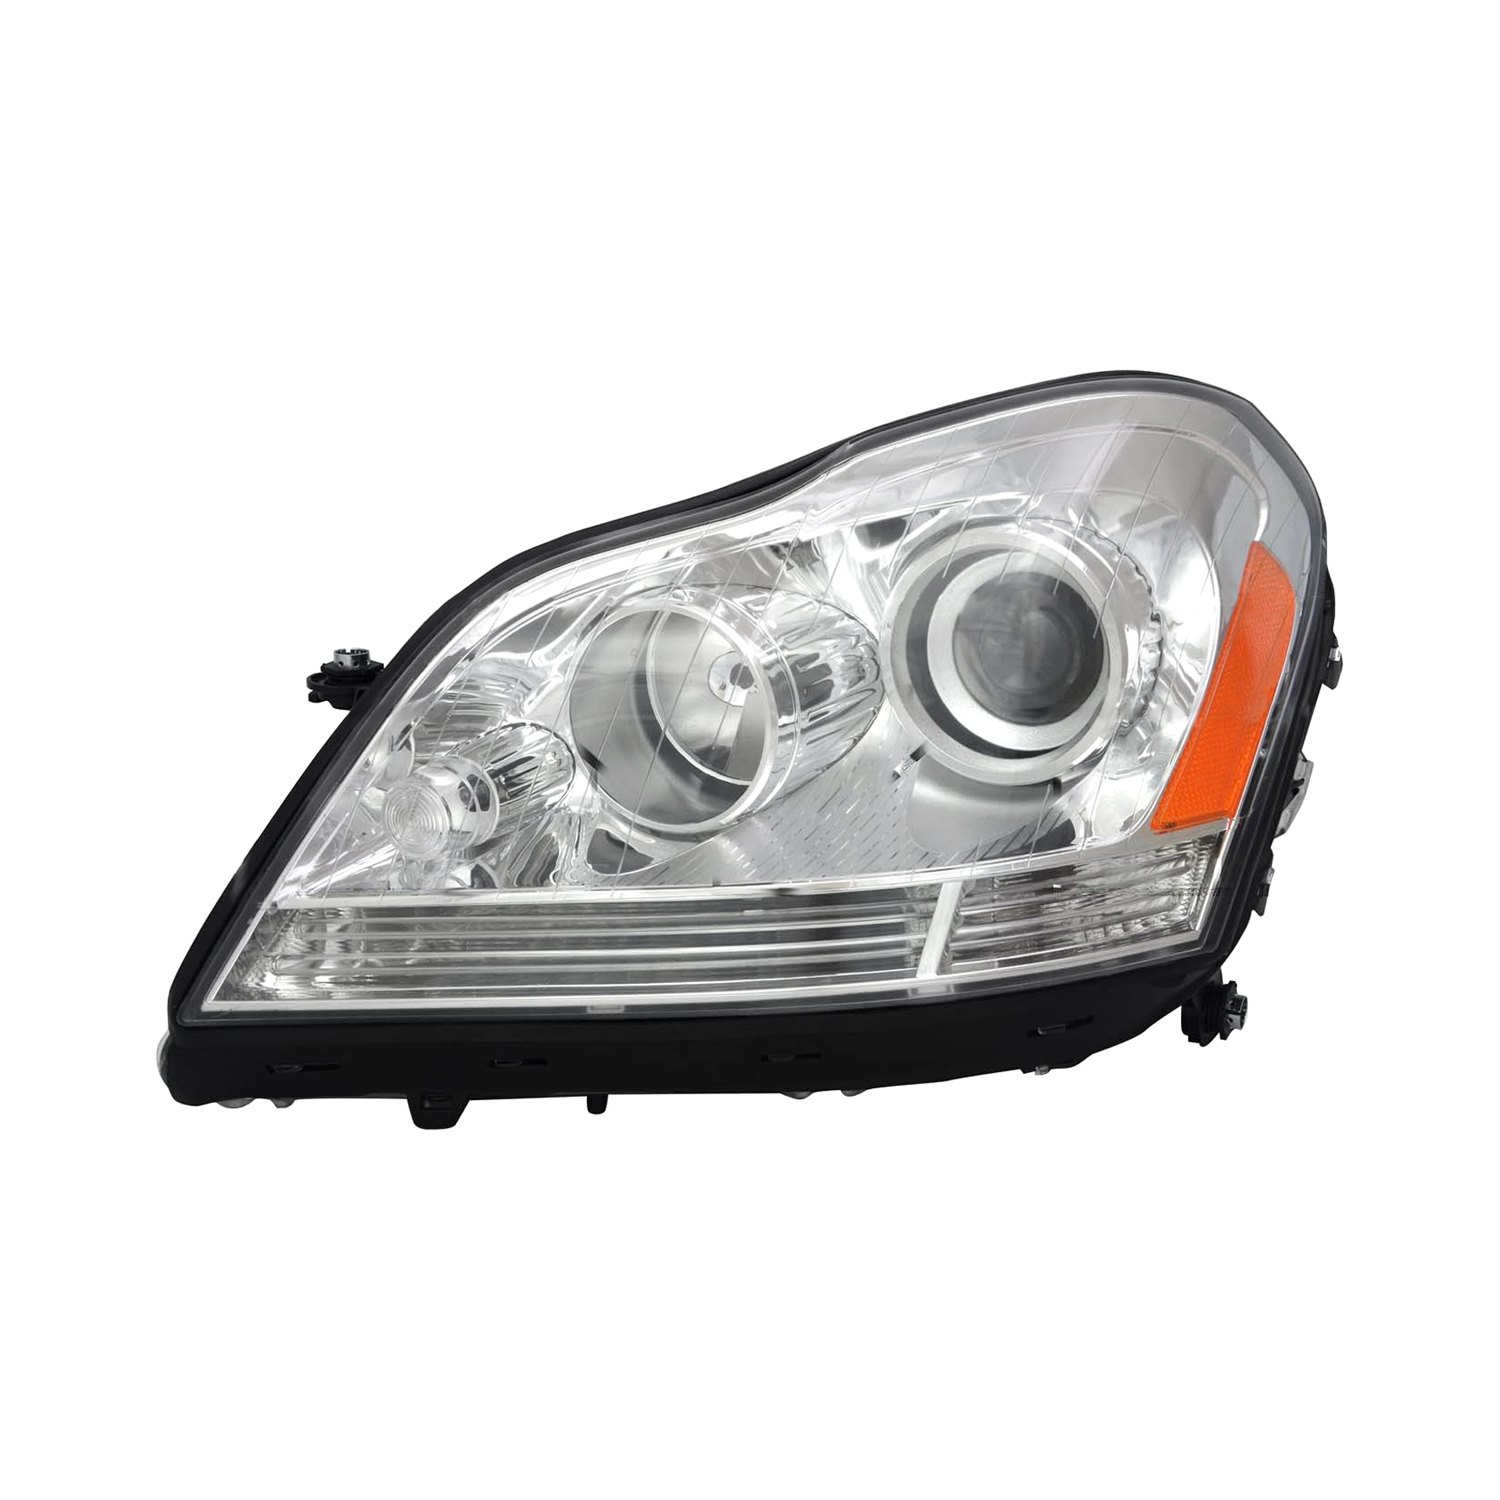 Tyc mercedes gl320 gl450 gl500 gl550 with factory for Mercedes benz headlight replacement